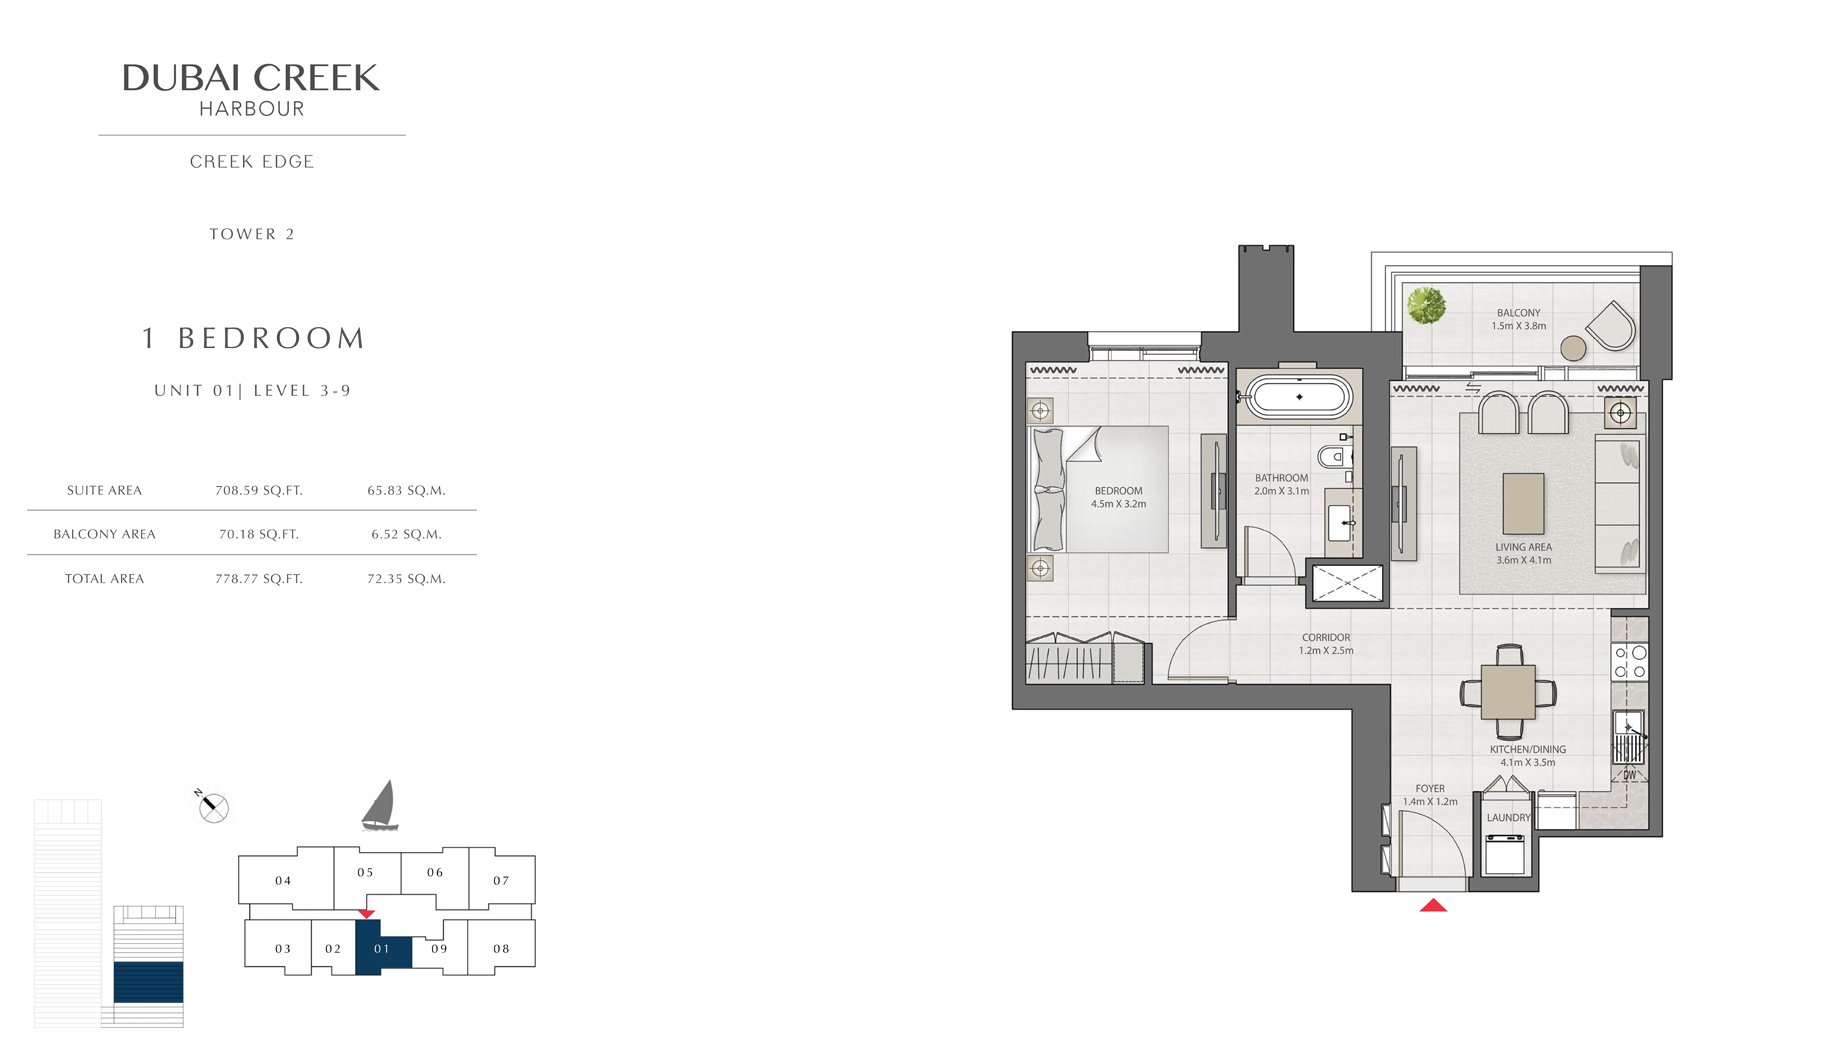 1 Bedroom Tower 2 Unit 01 Level 3-9 Size 778 sq.ft